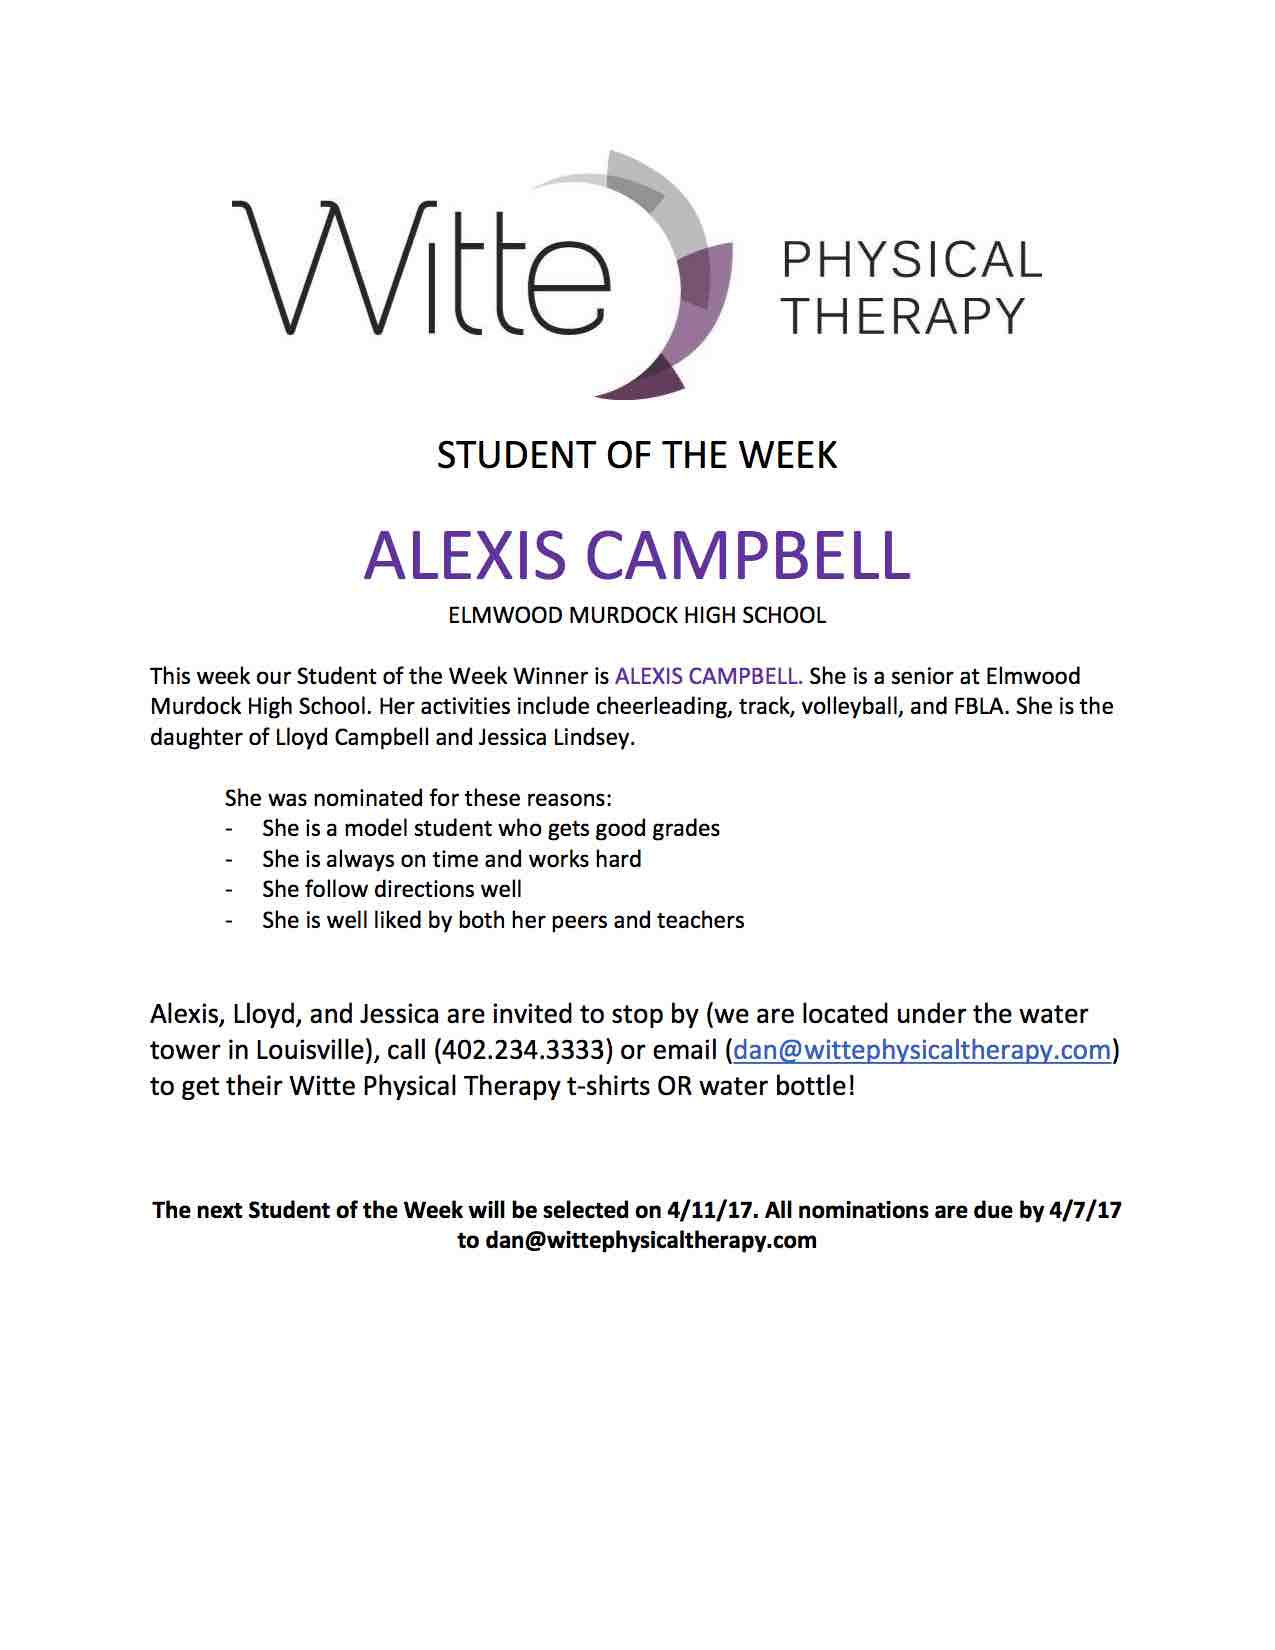 Student of the Week Selection 47